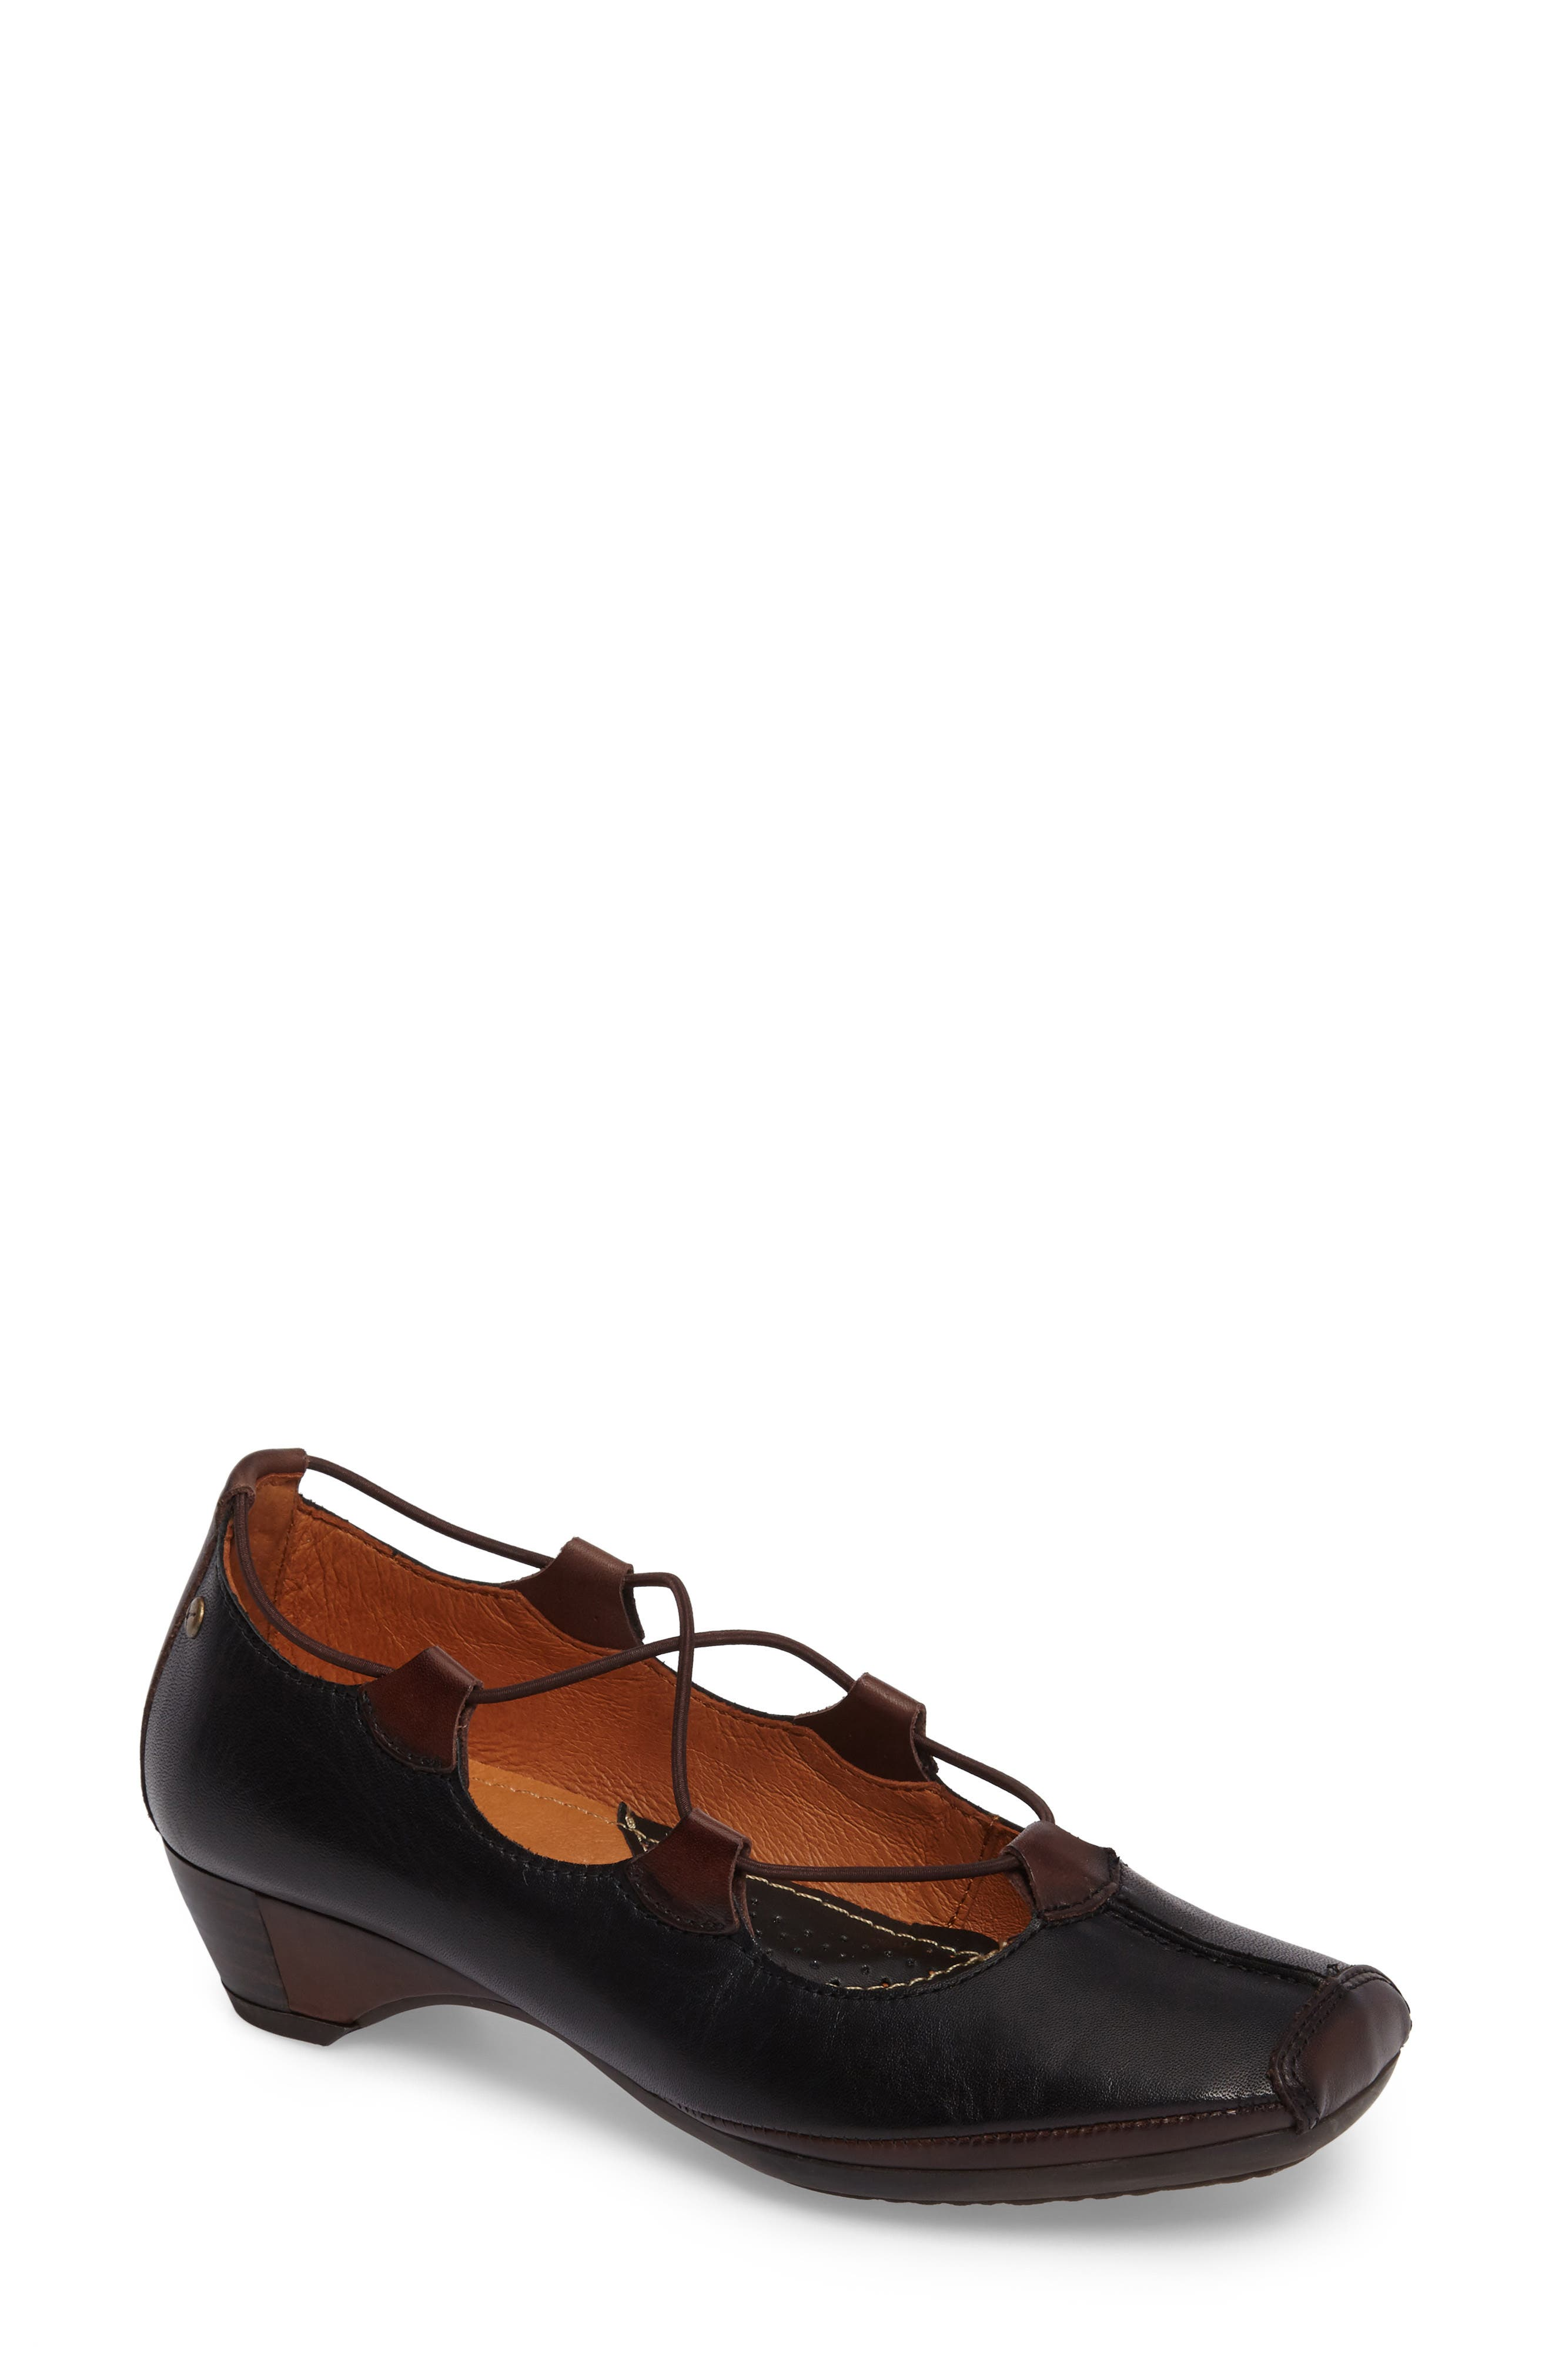 Gandia Lace-Up Pump,                         Main,                         color, BLACK OLMO LEATHER